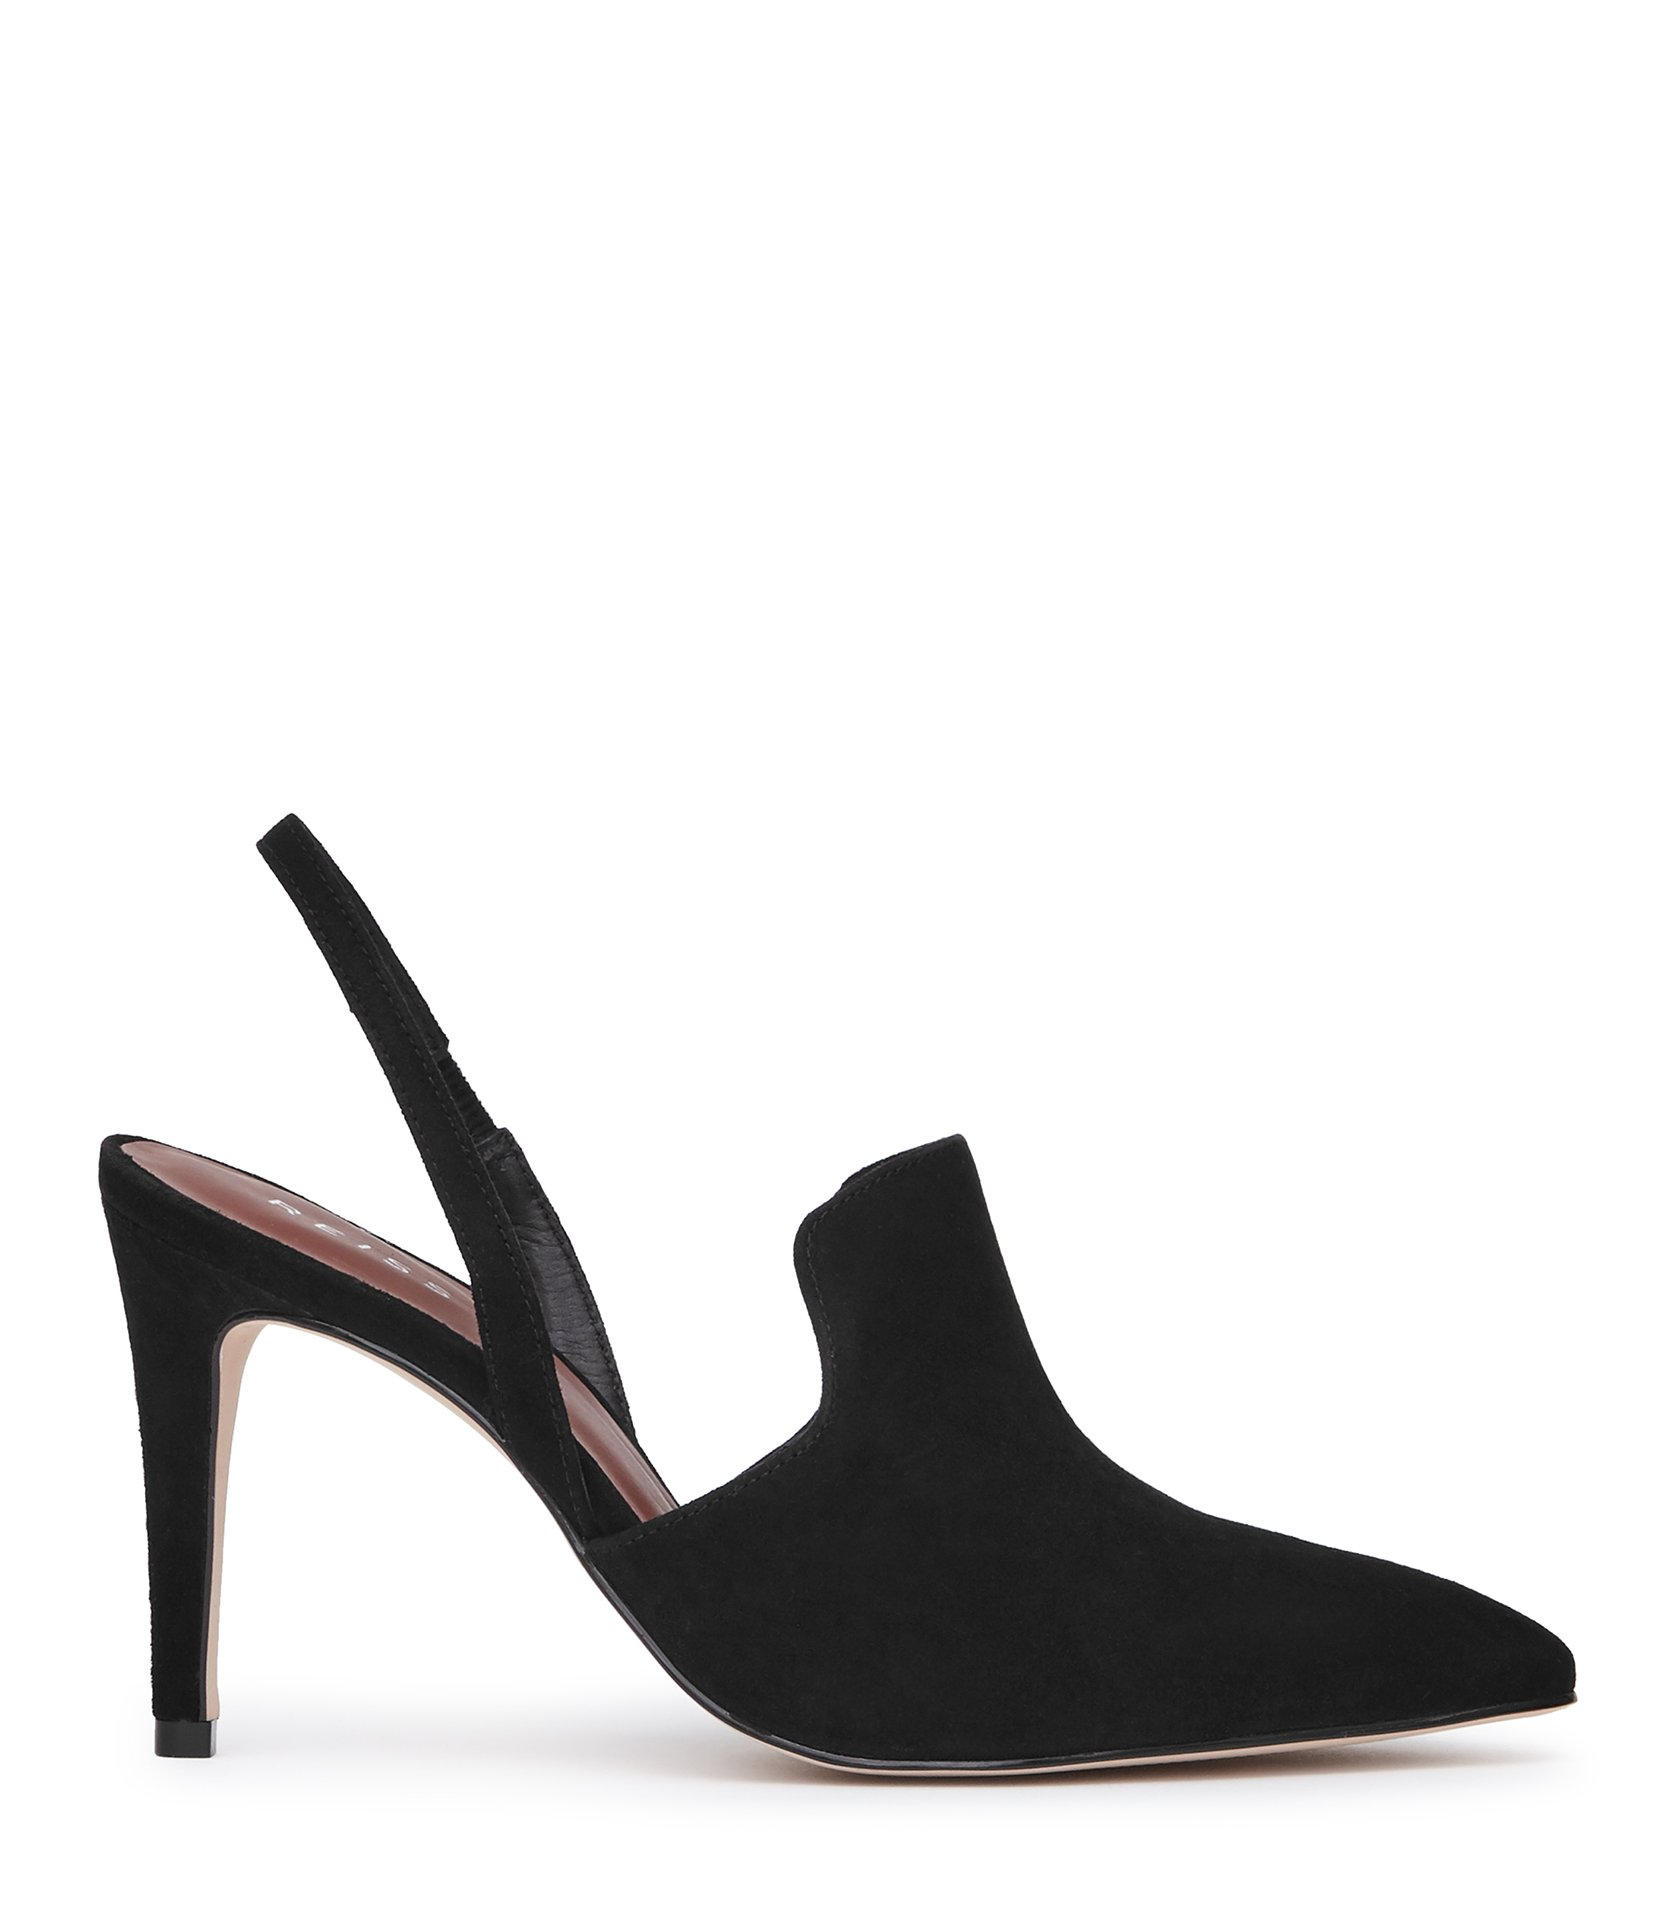 Hayley High Heel Shoes, Dhs895.